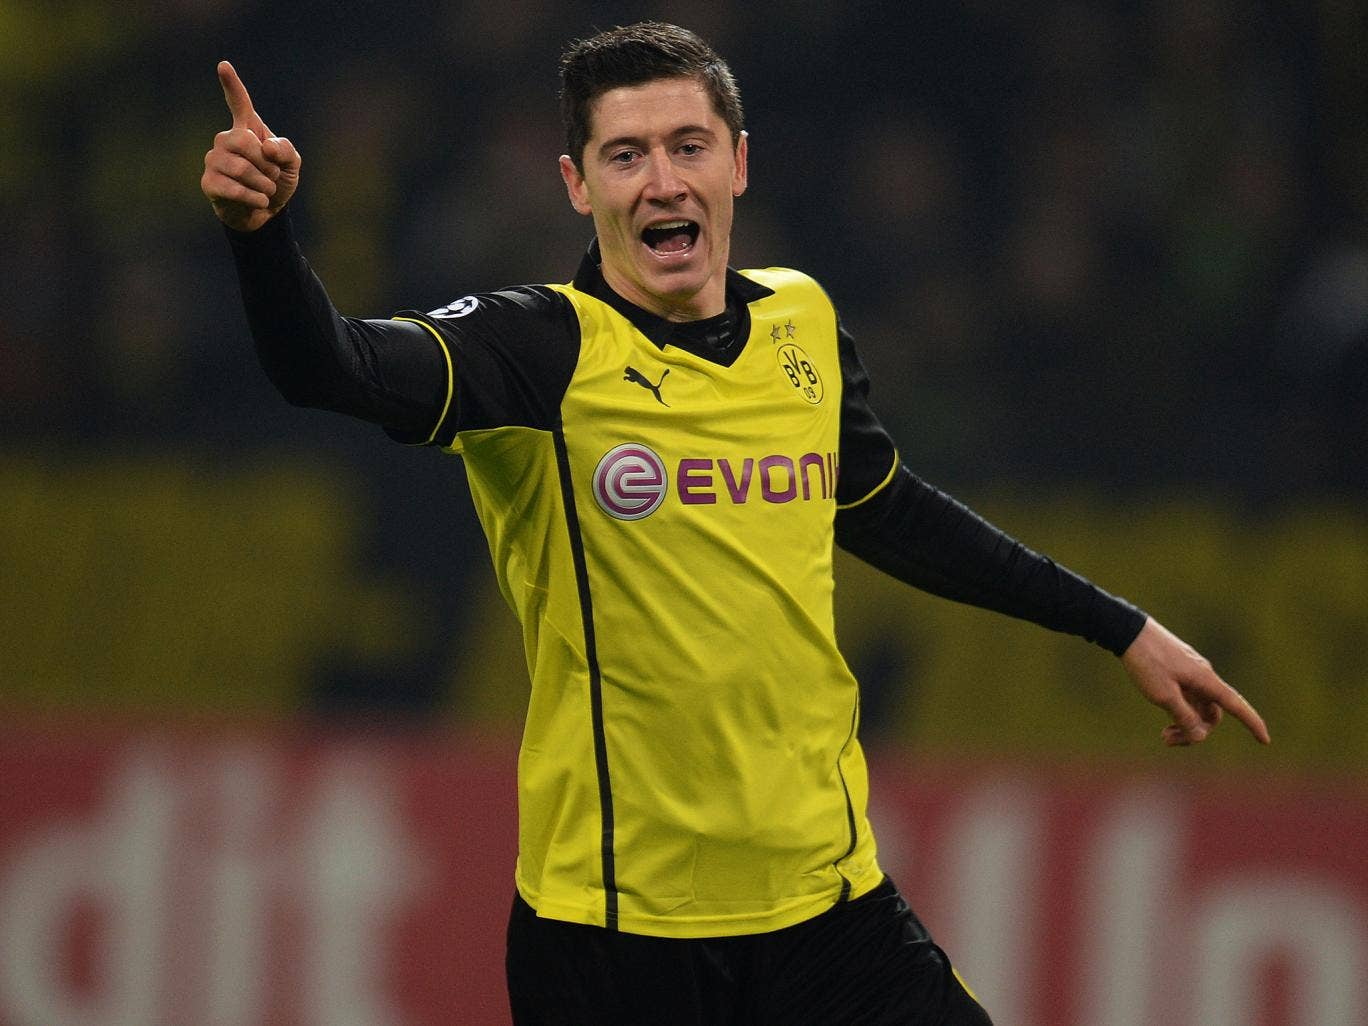 Borussia Dortmund striker Robert Lewandowski is reported to be having a medical with Bayern Munich today